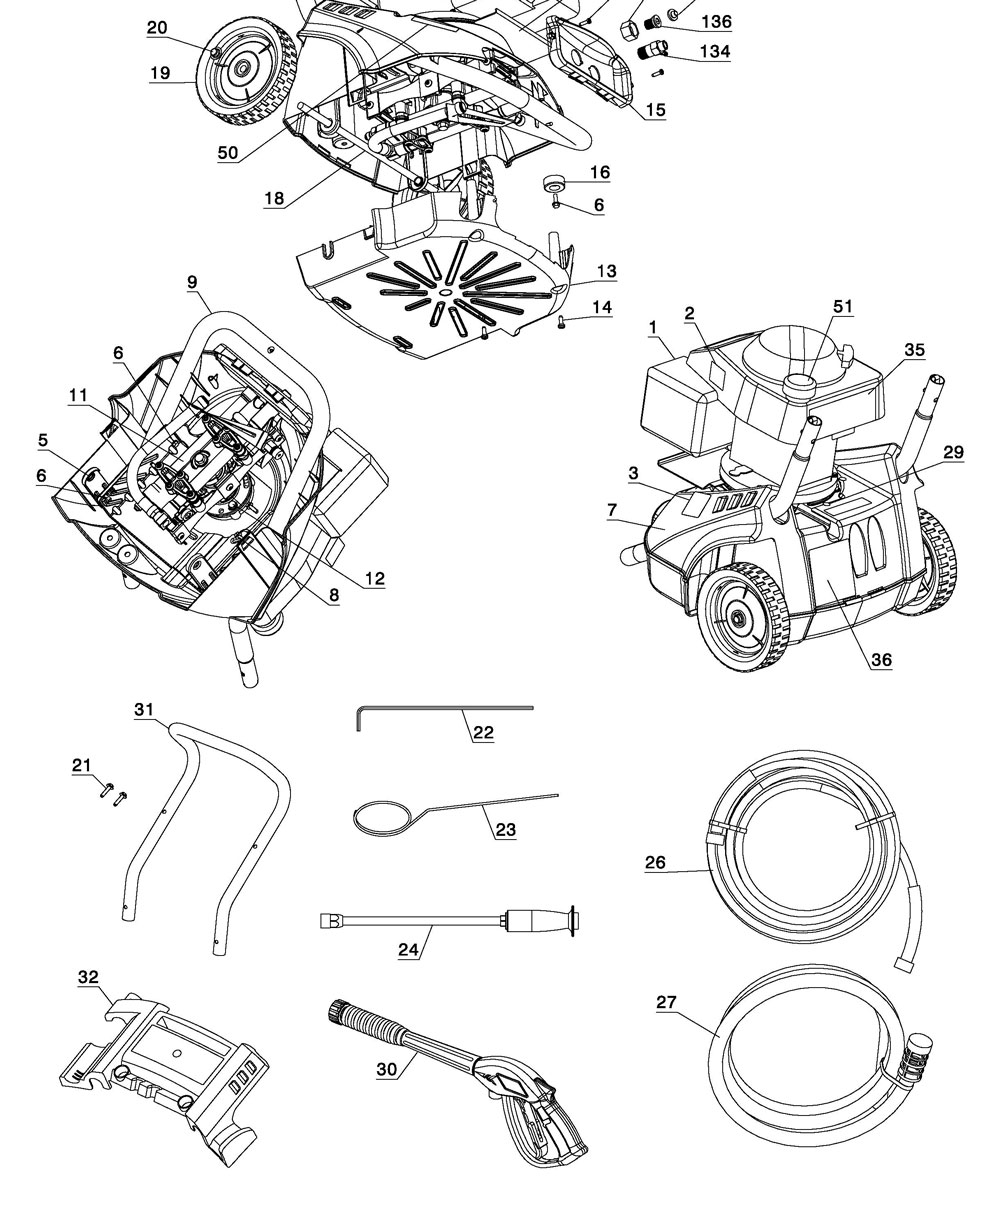 VR2522 - Pressure Washer Parts schematic